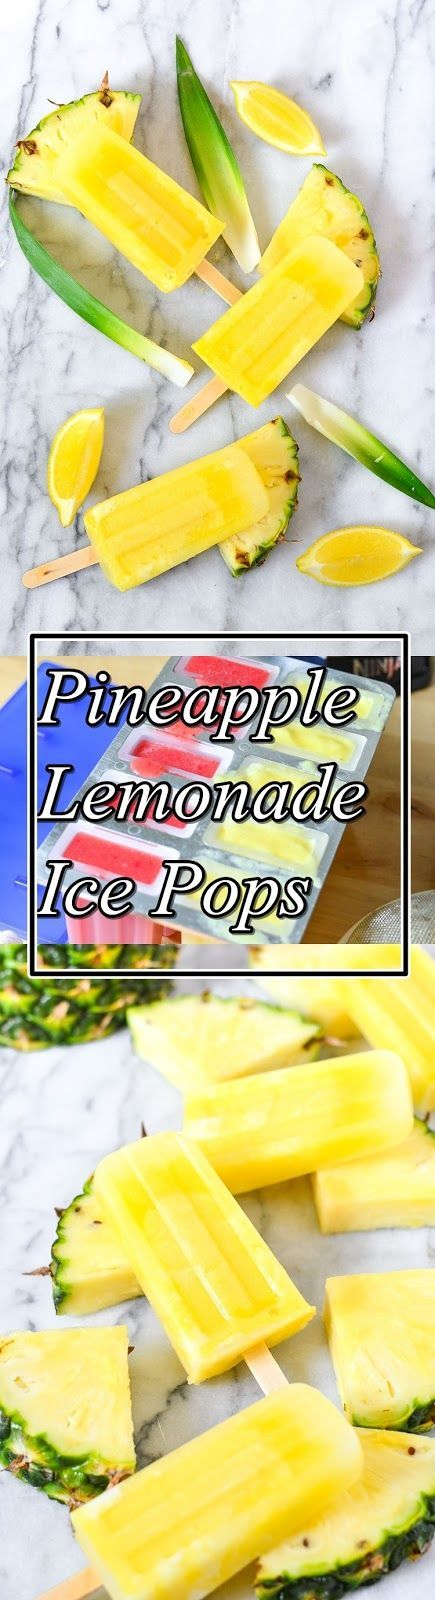 Pineapple Lemonade Ice Pops #pineapplelemonade Refreshing and delicious Pineapple Lemonade Ice Pops! Make them recent and wholesome proper at house for dessert.pineapple lemonade popsiclesWhenever I say let's make ice pops, my infant JUMPS for joy! She runs to the kitchen and we seem to be to see what delicious and recent fruit we should puree correct into a delicious ice pop. This is by means of means of far the greatest ice pop mold we've discovered and it appears to be like simply identic #pineapplelemonade